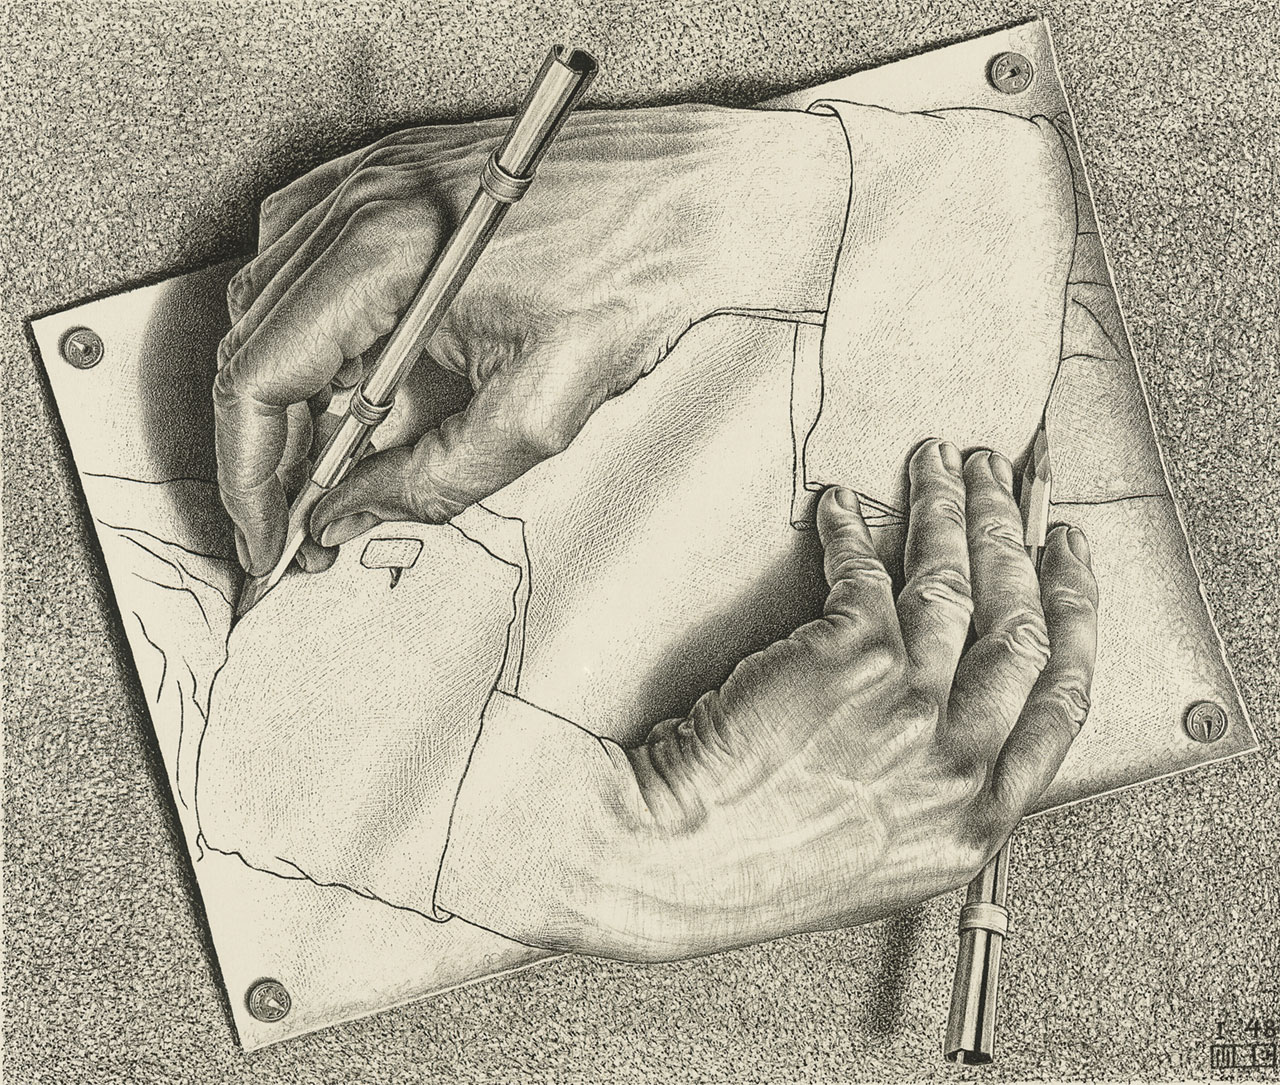 M. C. Escher, Drawing hands, January 1948, lithograph. Escher Collection, Gemeentemuseum Den Haag, The Hague, the Netherlands © The M. C. Escher Company, the Netherlands. All rights reserved.